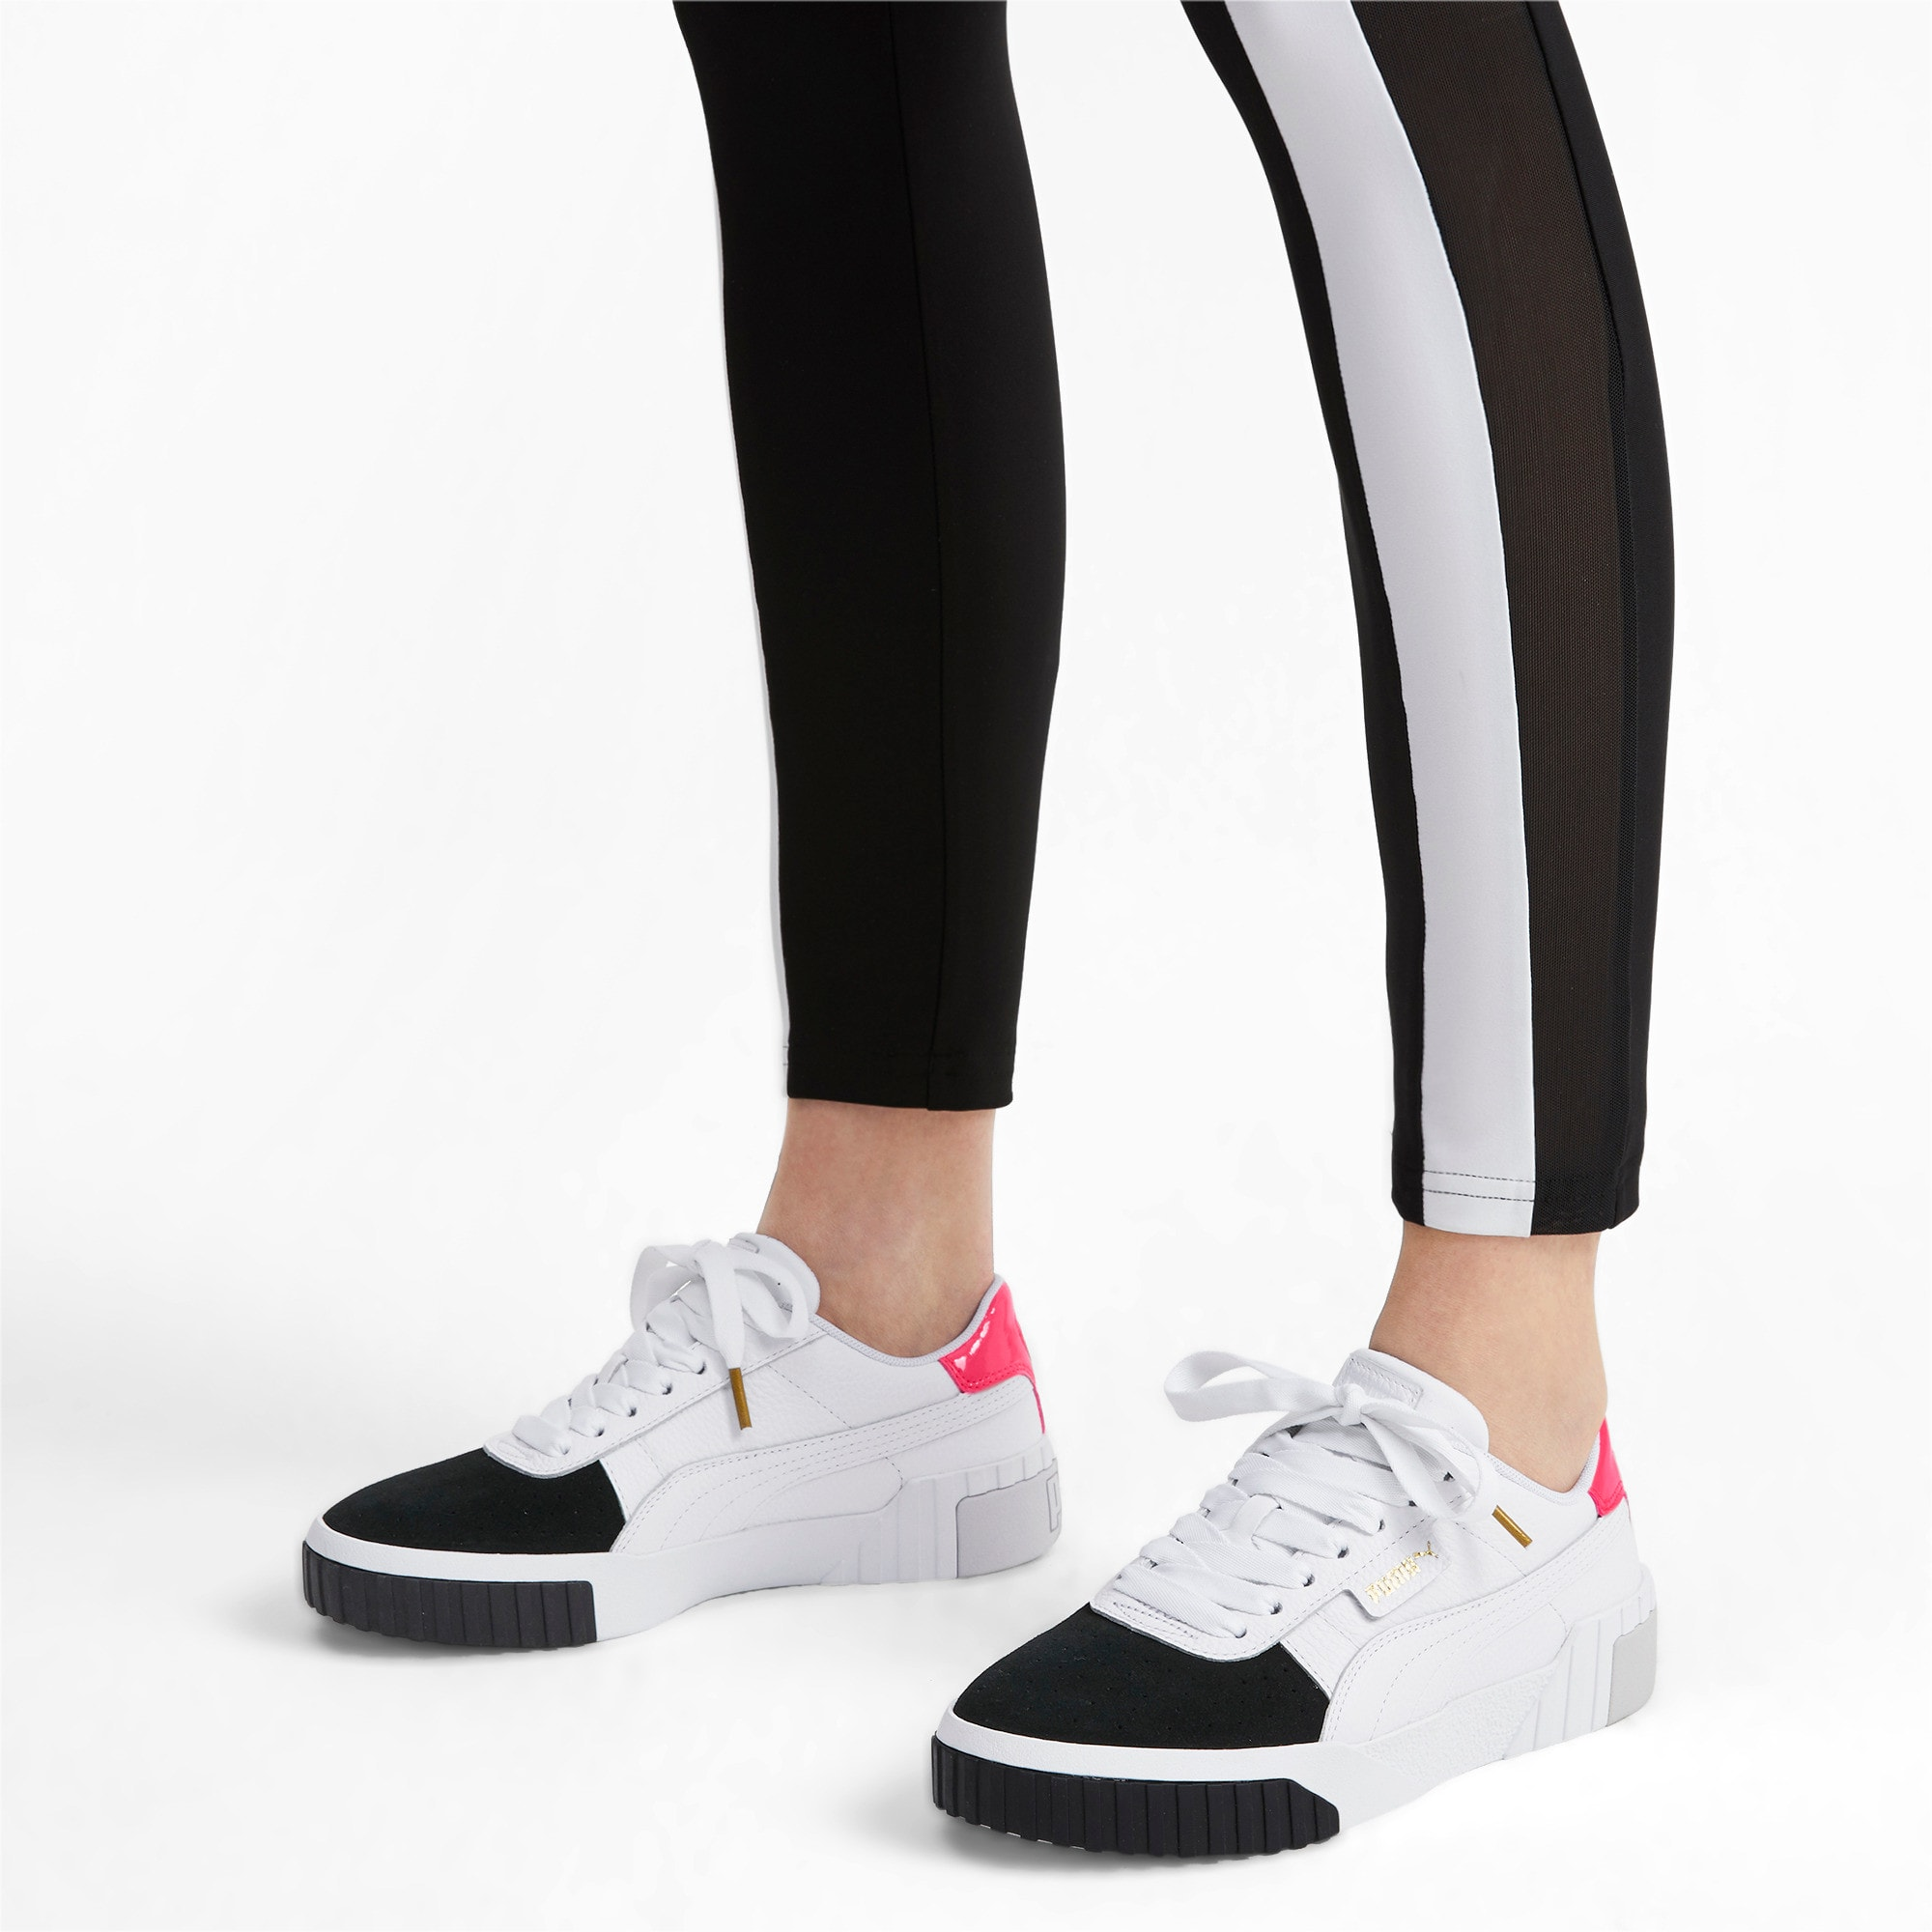 Thumbnail 2 of Cali Remix Women's Trainers, Puma White-Puma Black, medium